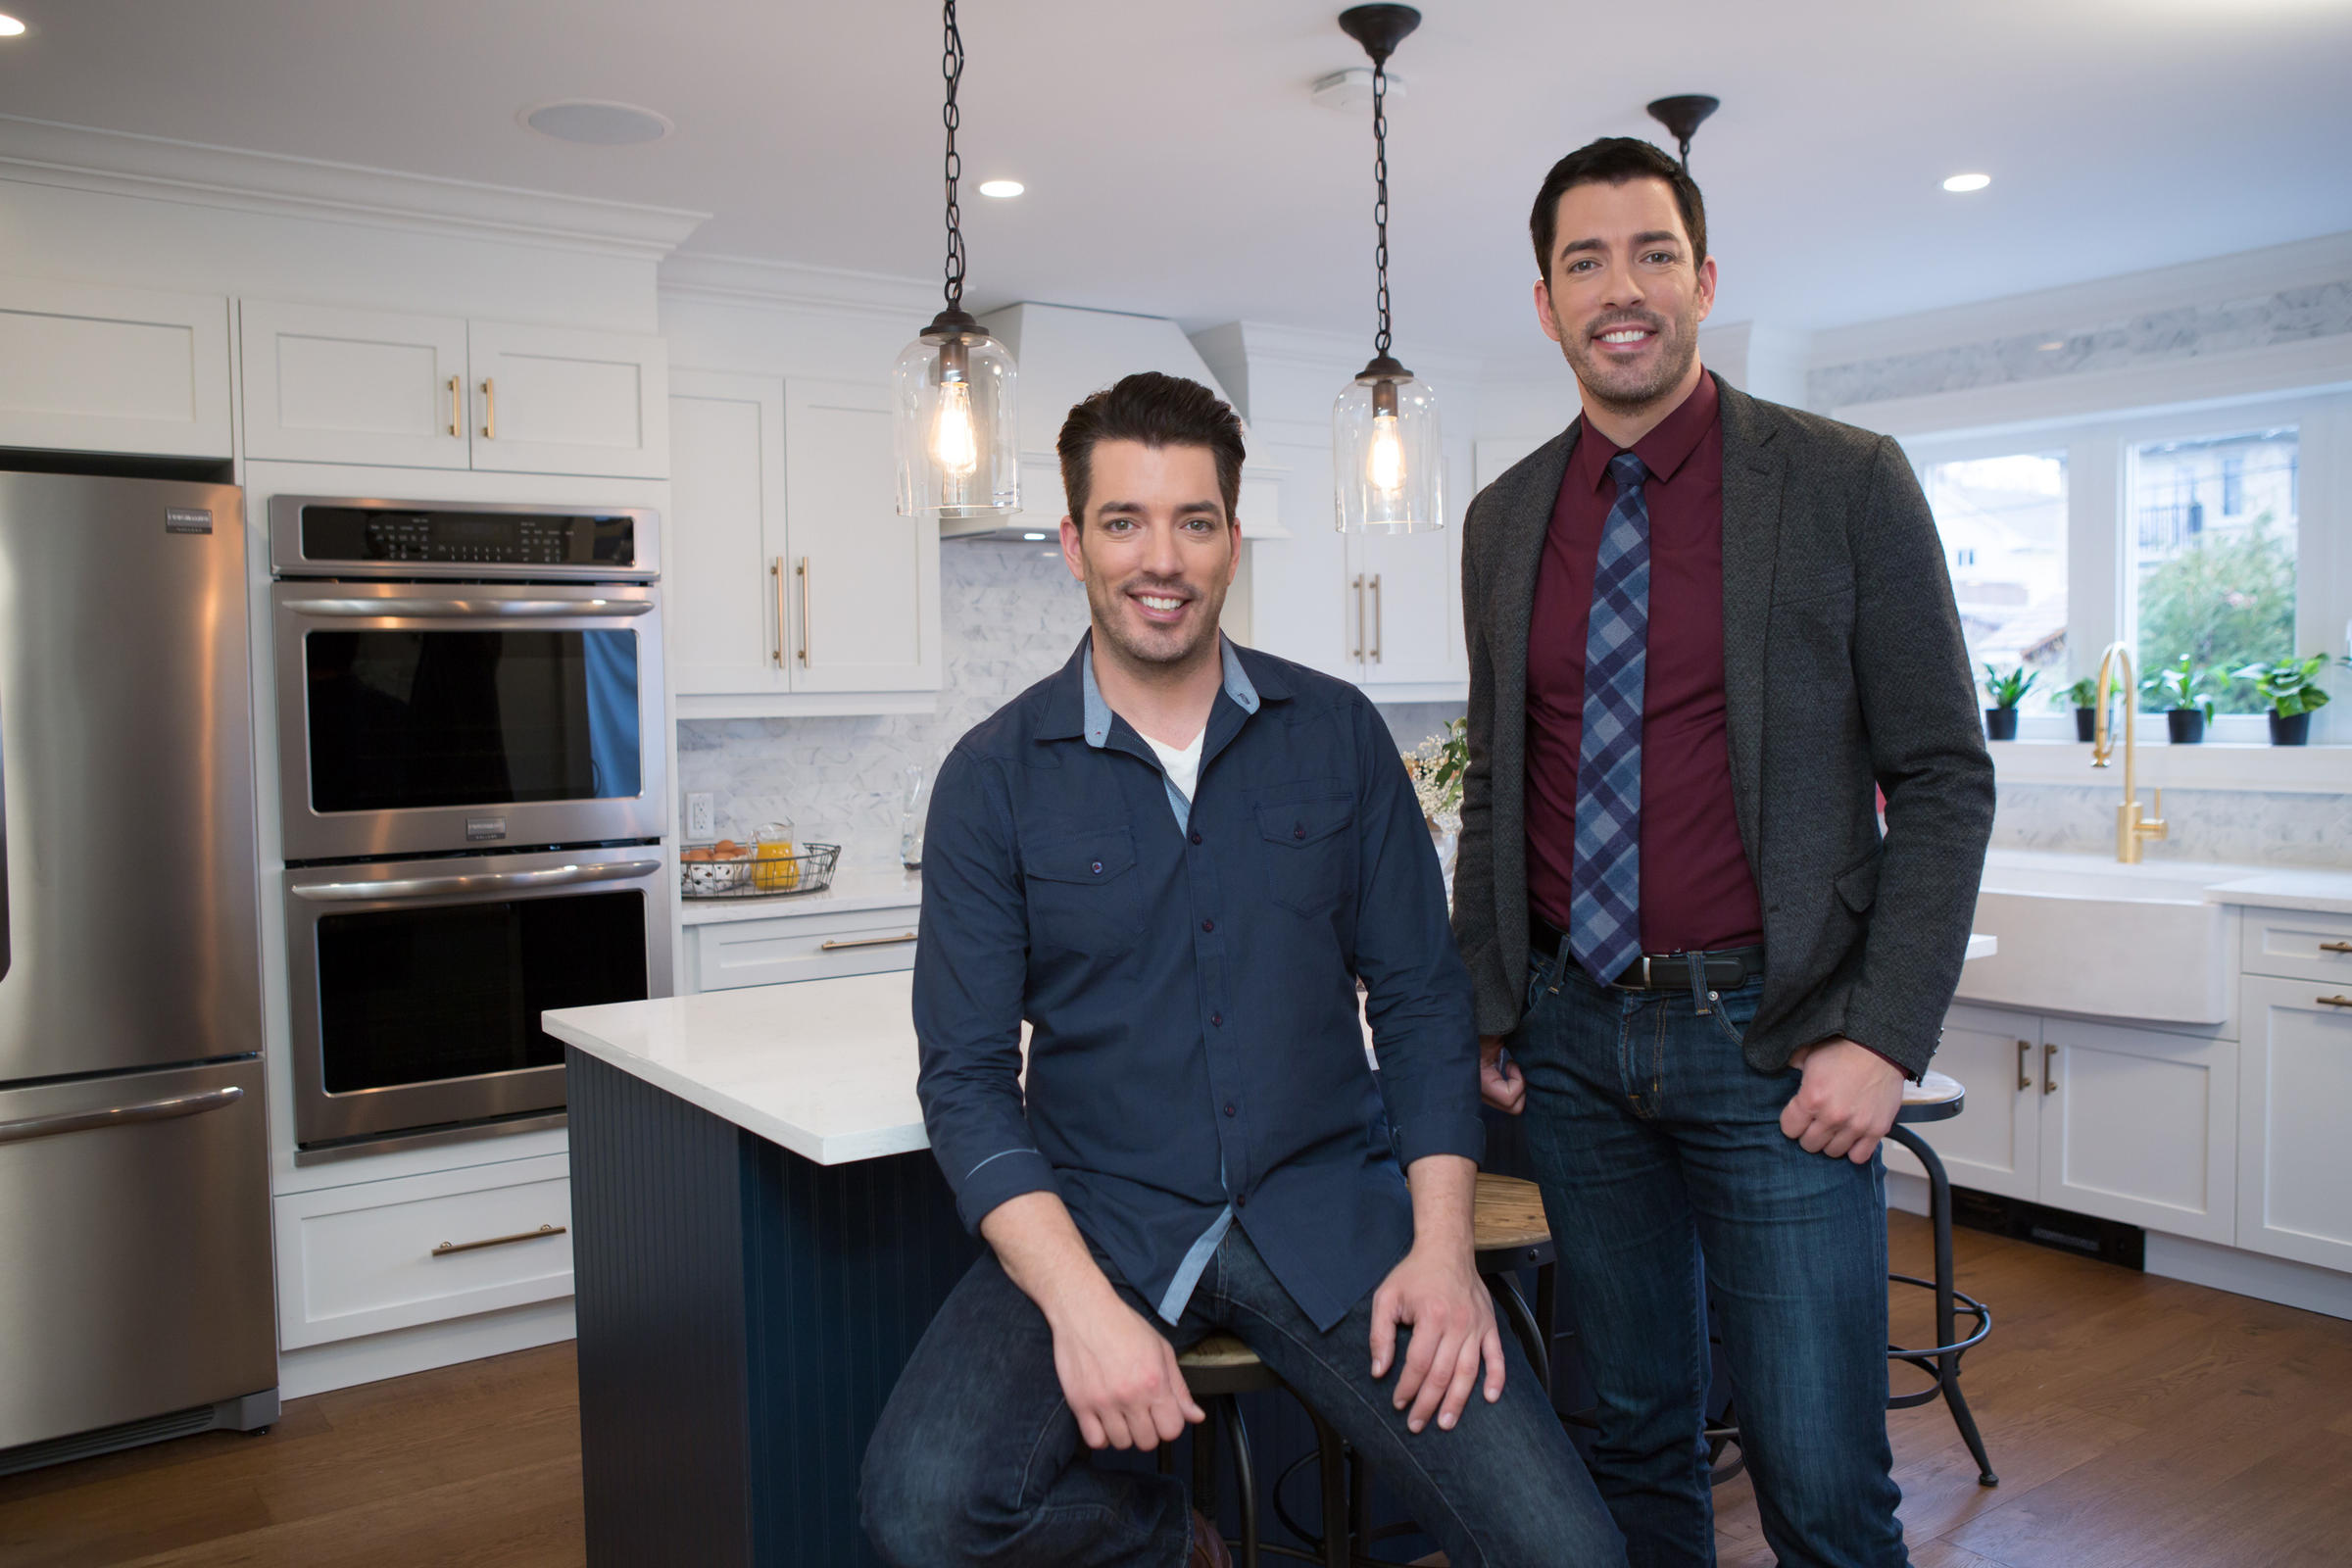 The property brothers flip a page on their tv triumphs Drew jonathan property brothers